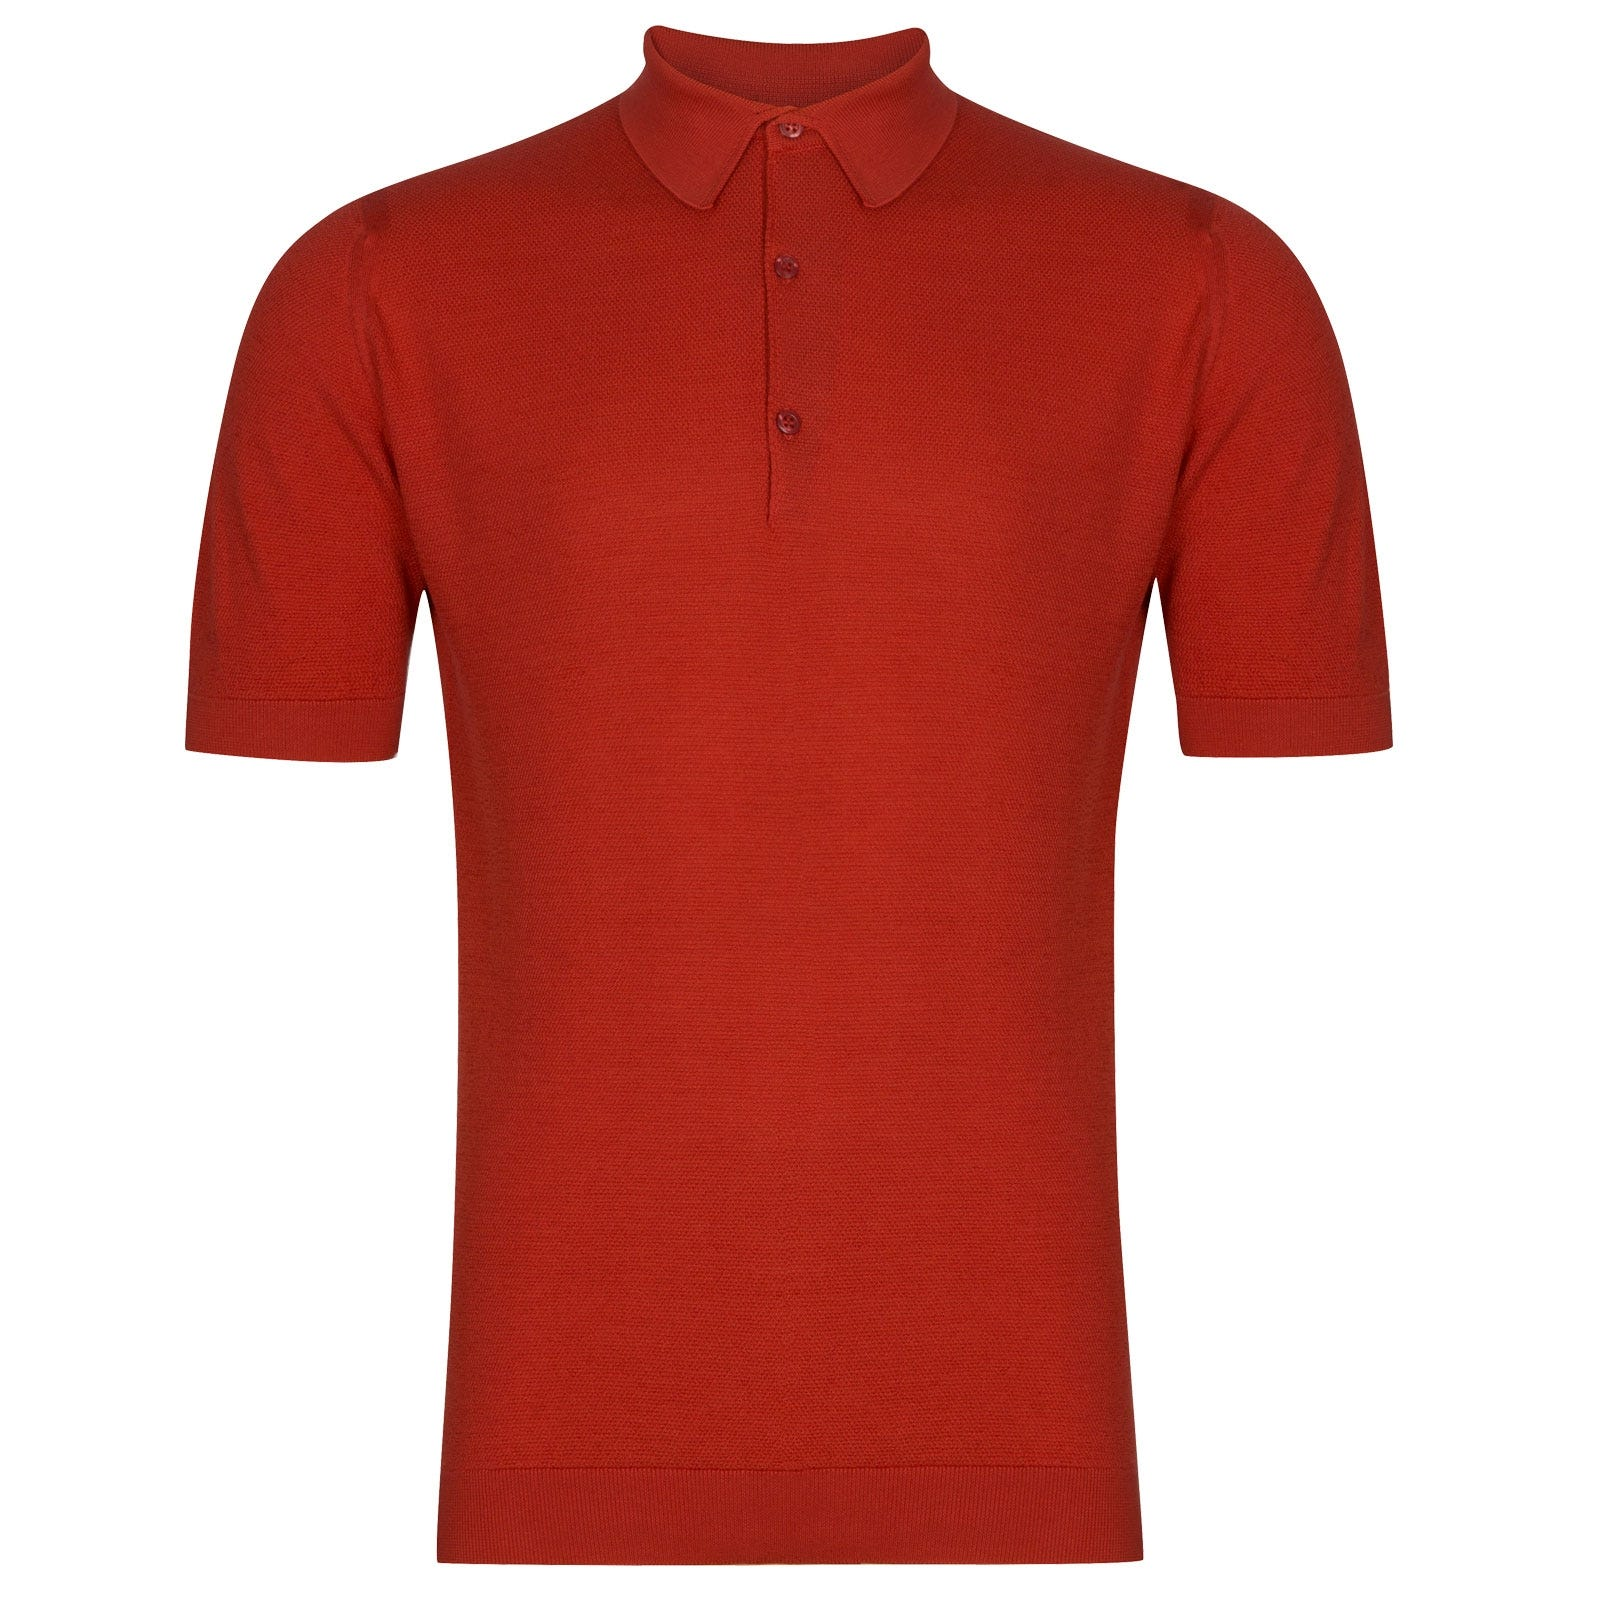 John Smedley Roth in Red Admiral Shirt-SML